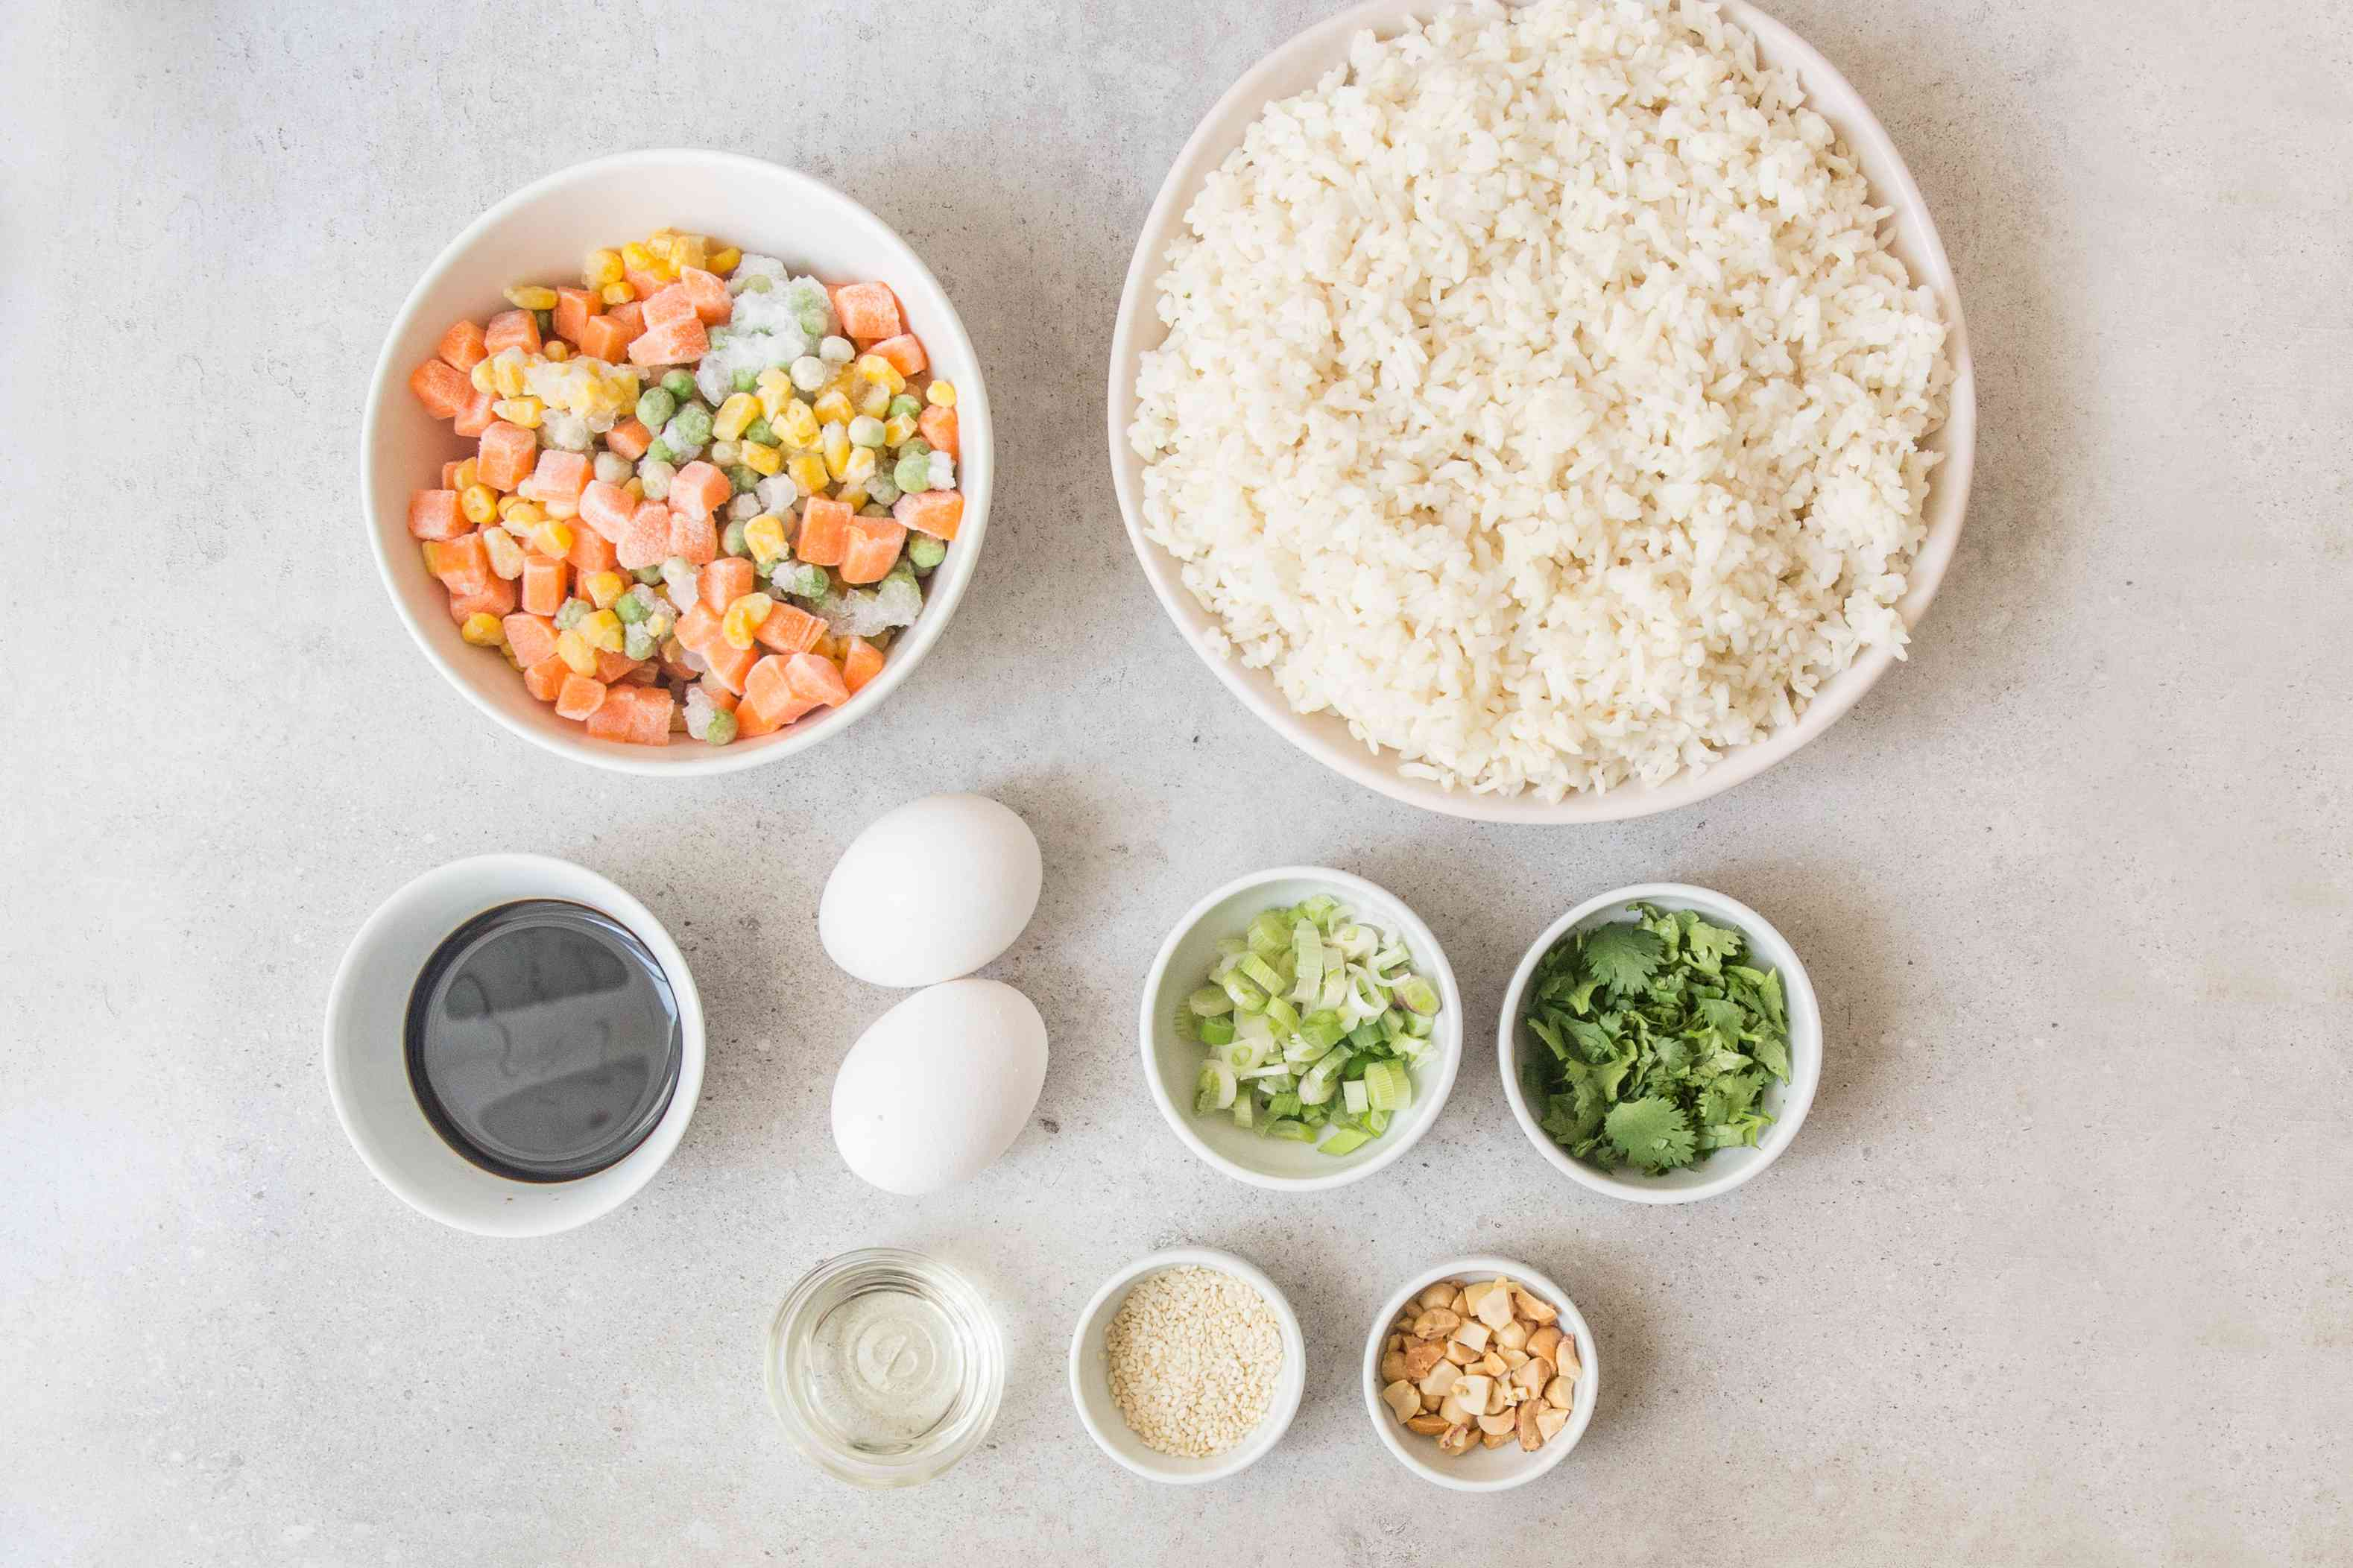 Ingredients for leftovers fried rice